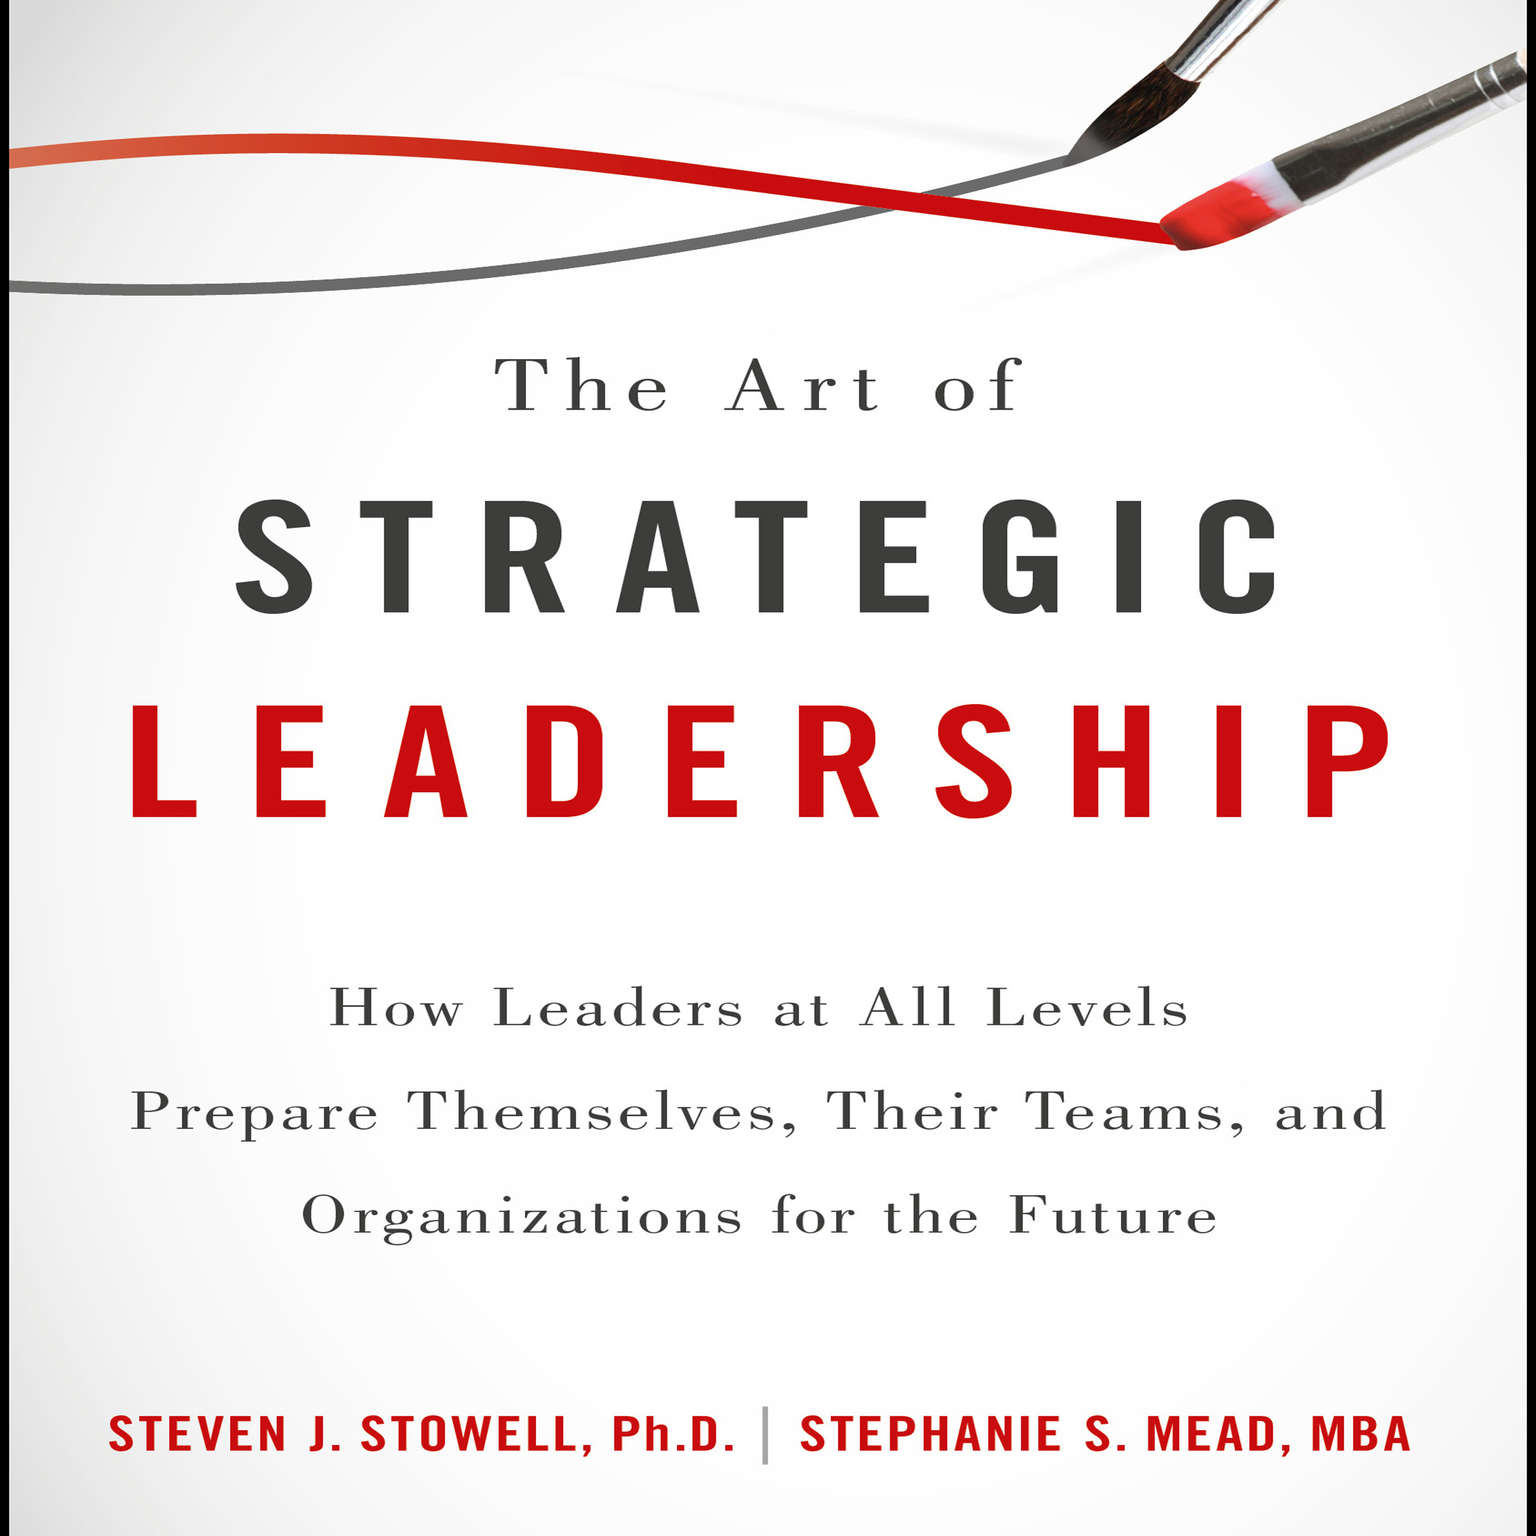 The Art of Strategic Leadership: How Leaders at All Levels Prepare Themselves, Their Teams, and Organizations for the Future Audiobook, by Steven J. Stowell